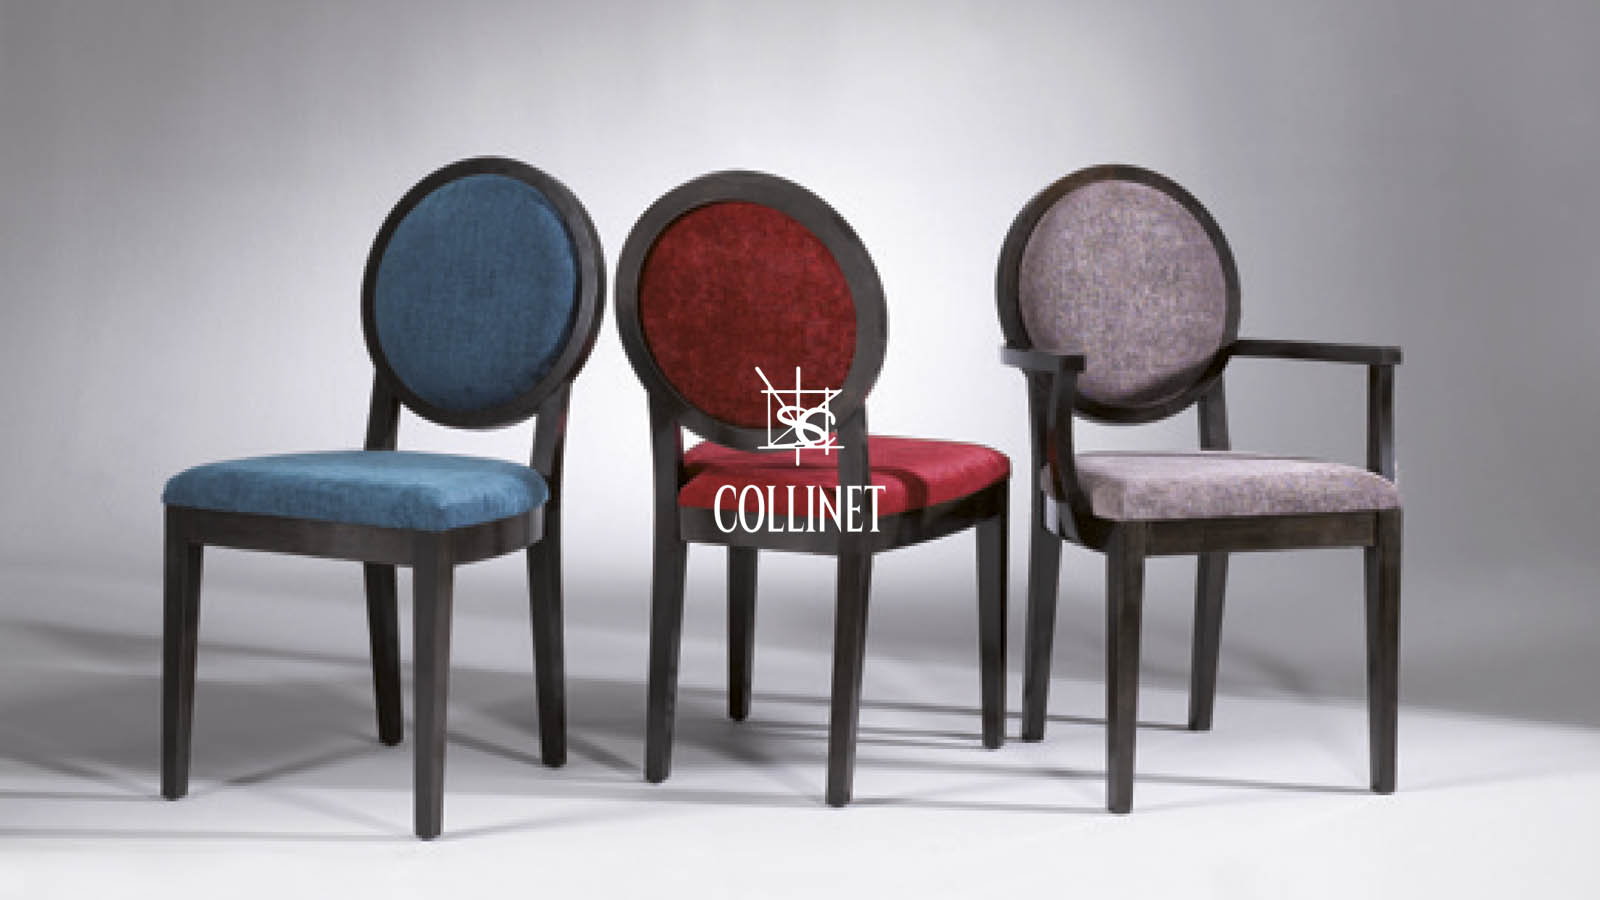 Collinet chairs armchairs